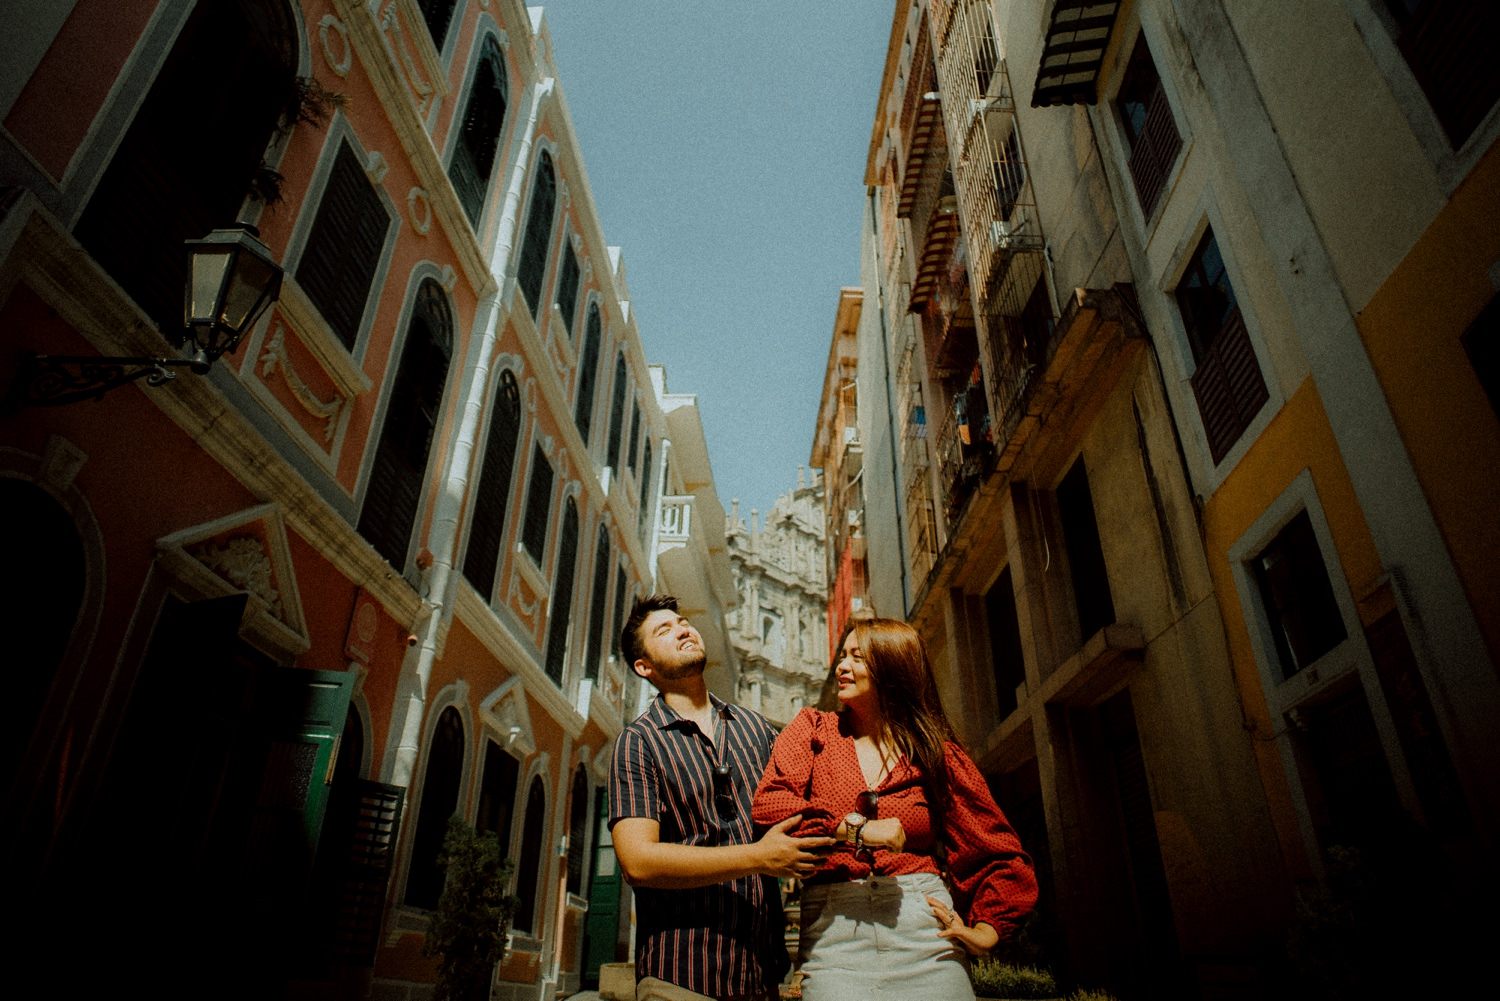 Oak St Studios - Cheska and Jordan - Macau Macao Engagement Session Photographer